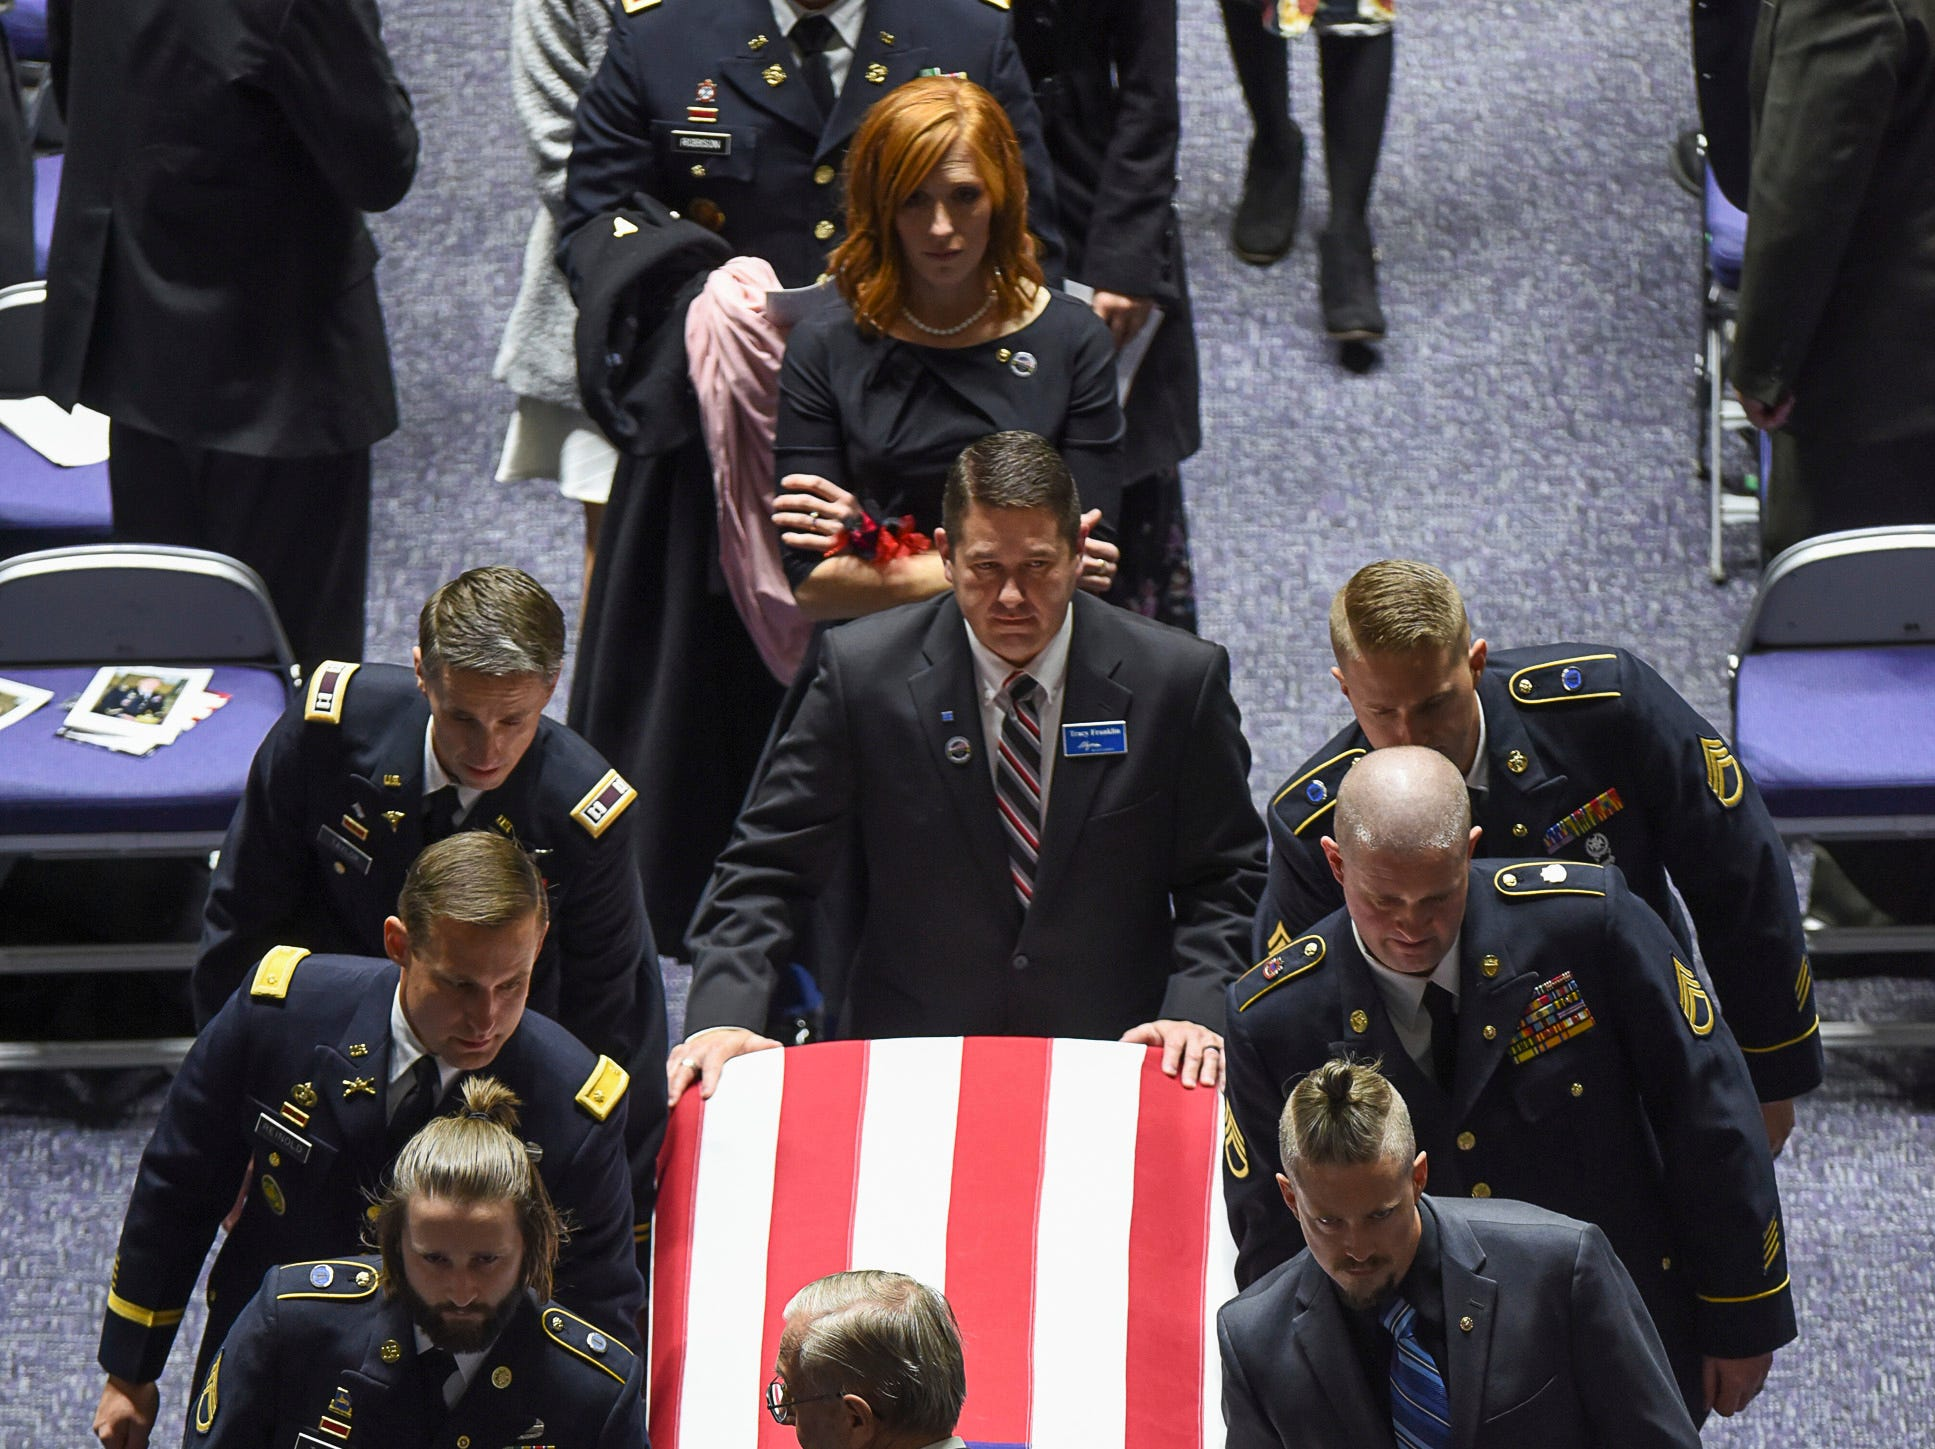 Jennie Taylor follows the casket holding her husband, Maj. Brent R. Taylor' during services at Weber State University's Dee Event Center in Ogden, Utah on Saturday, Nov. 17, 2018. Taylor, 39, the mayor of North Ogden, died Nov. 3, 2018, while serving in Afghanistan.